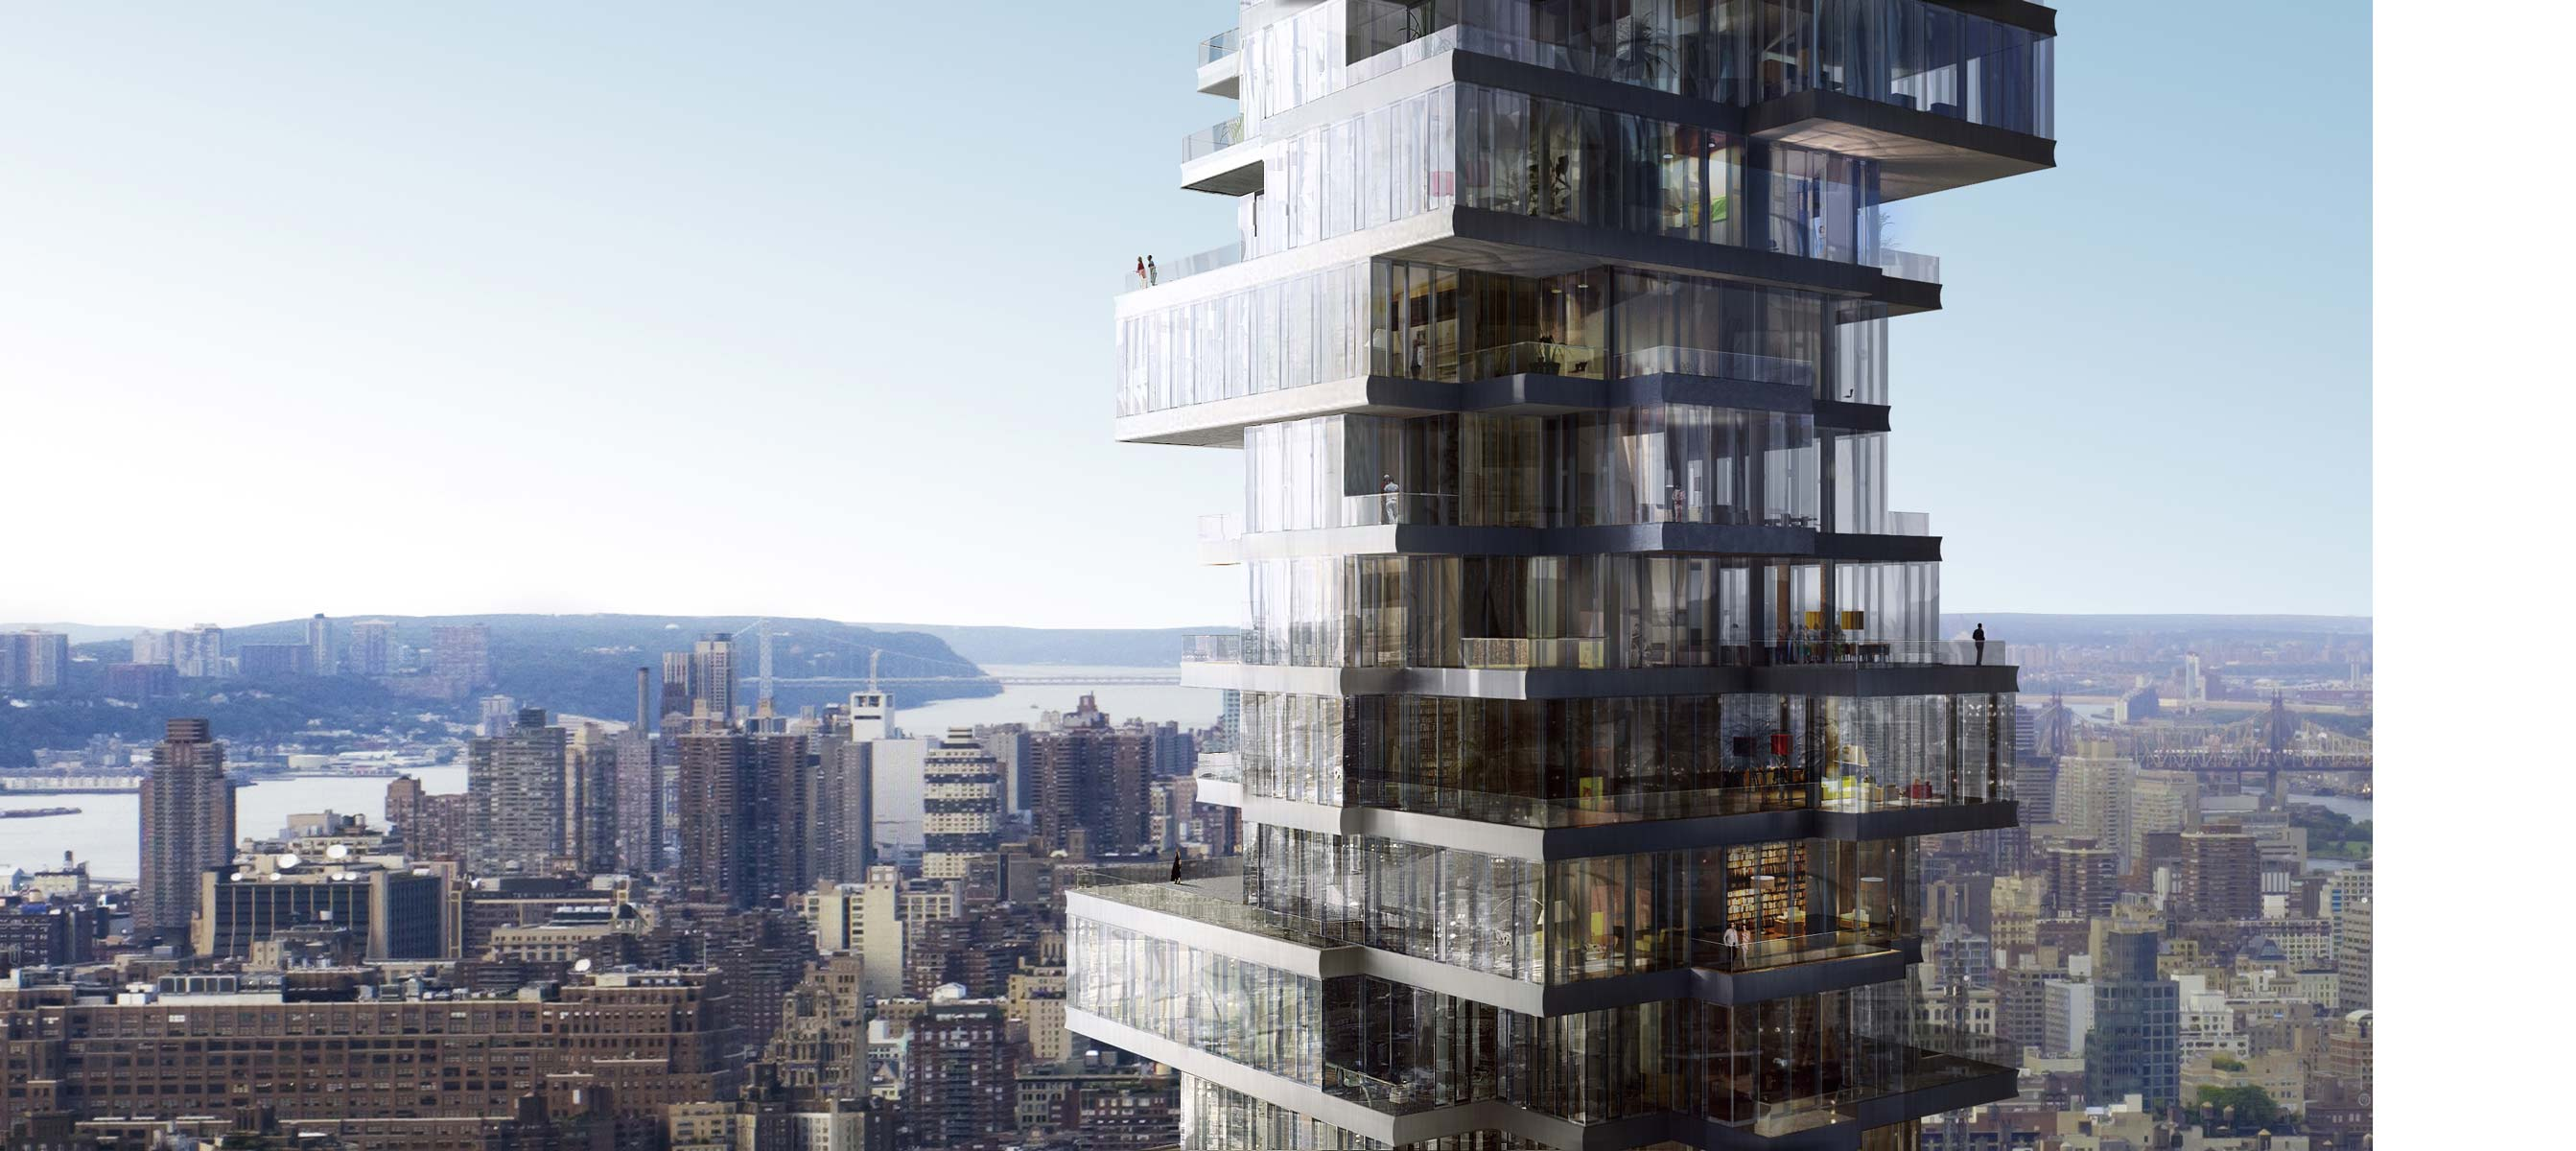 Iconic new luxury condos for sale in nyc 56 leonard for Top residential architects nyc